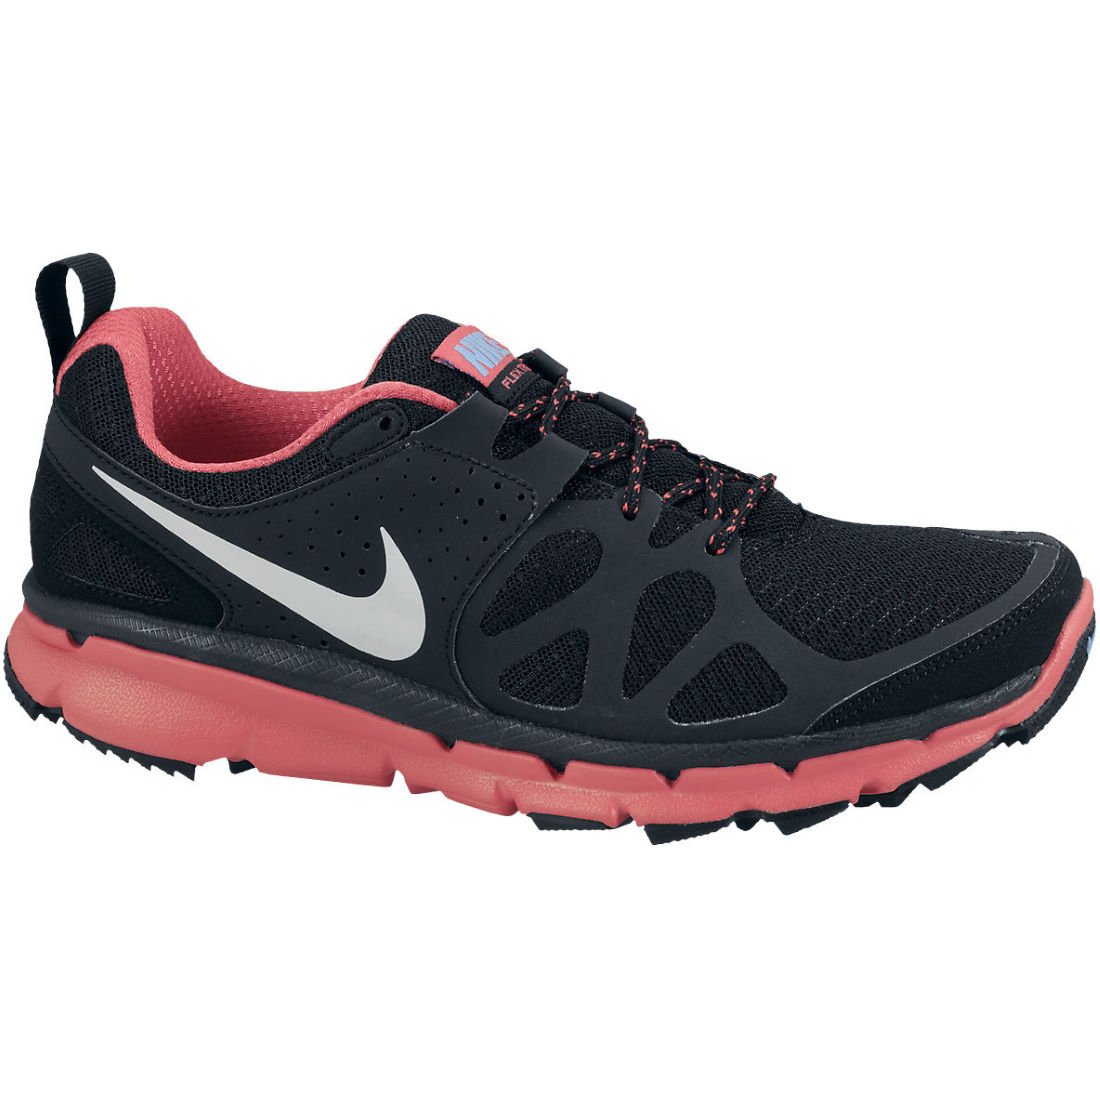 chaussures de running trail nike ladies flex trail shoes aw12 wiggle france. Black Bedroom Furniture Sets. Home Design Ideas